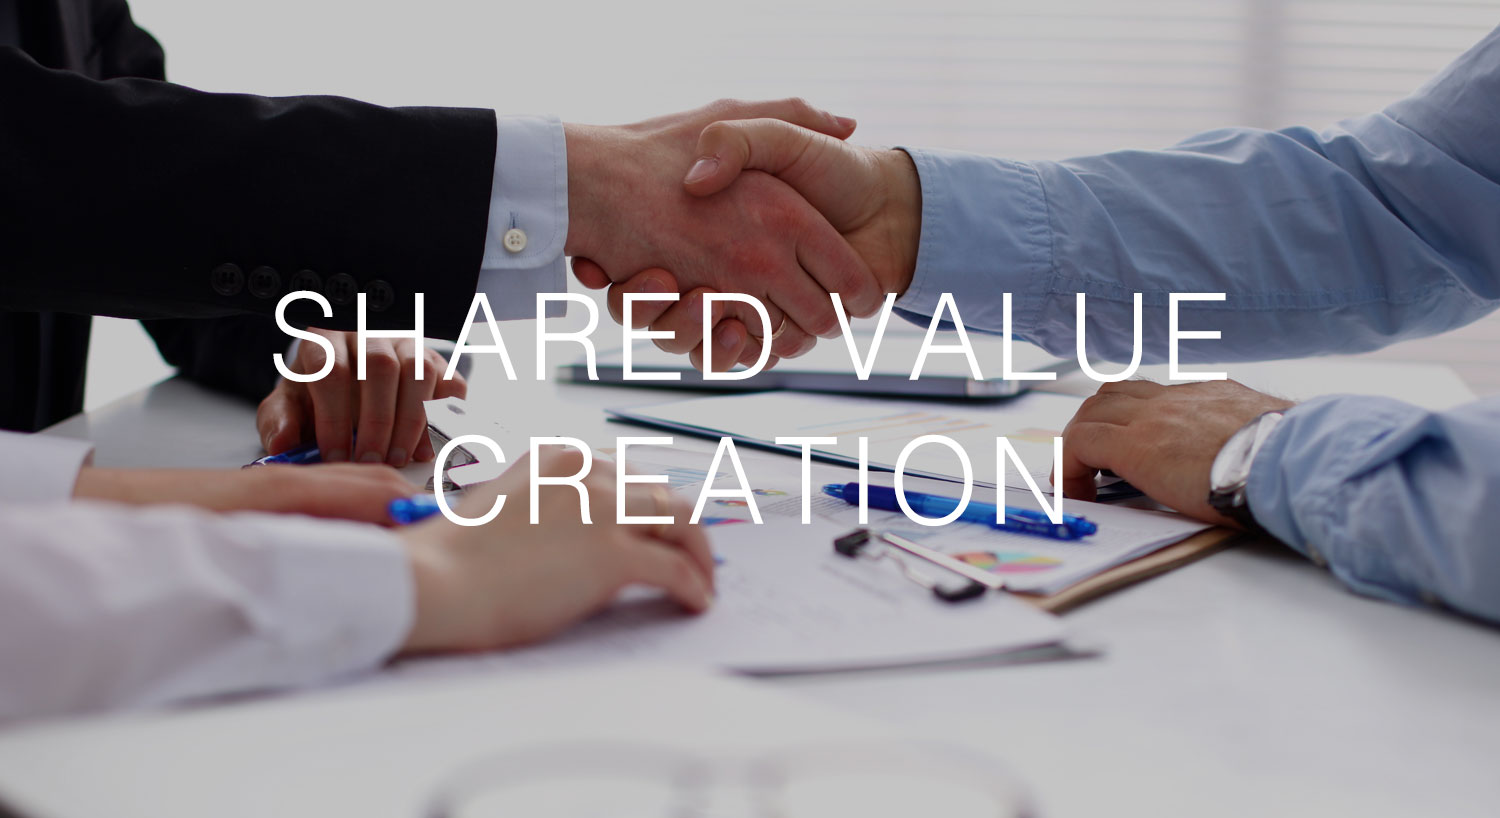 We believe deals should only happen where the whole is greater than the sum of the parts, and we love to bring people and businesses together to create shared value.